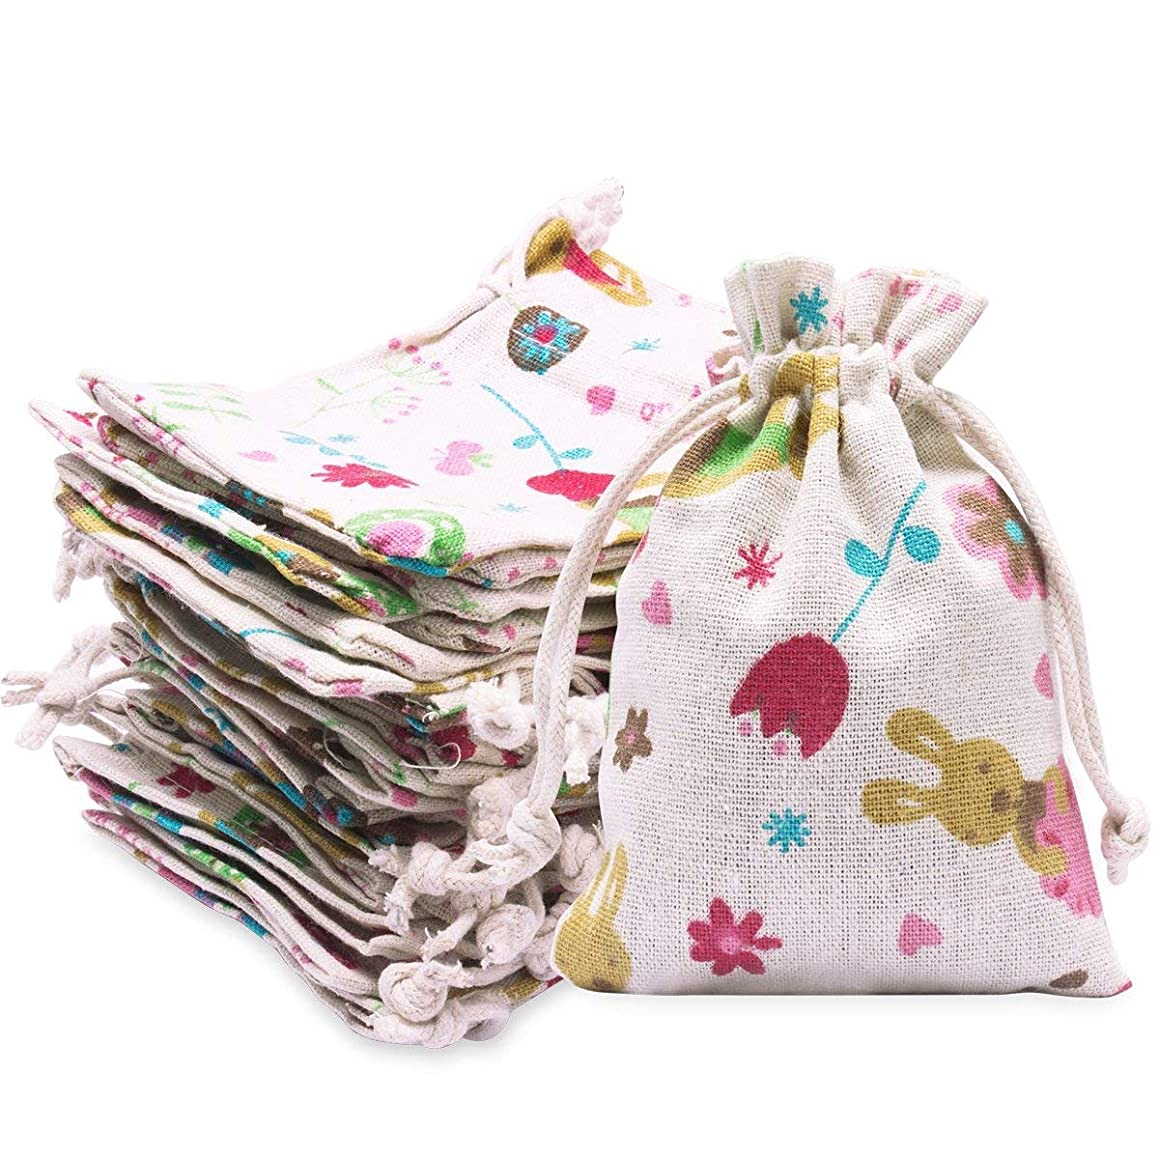 Vovii 24 Pcs Burlap Bags Flower Rabbit Pattern with Drawstring,Perfect Burlap Gift Bags for Jewelry Wedding Party Candy Favor Pouch, 3.5 x 5.0 Inch